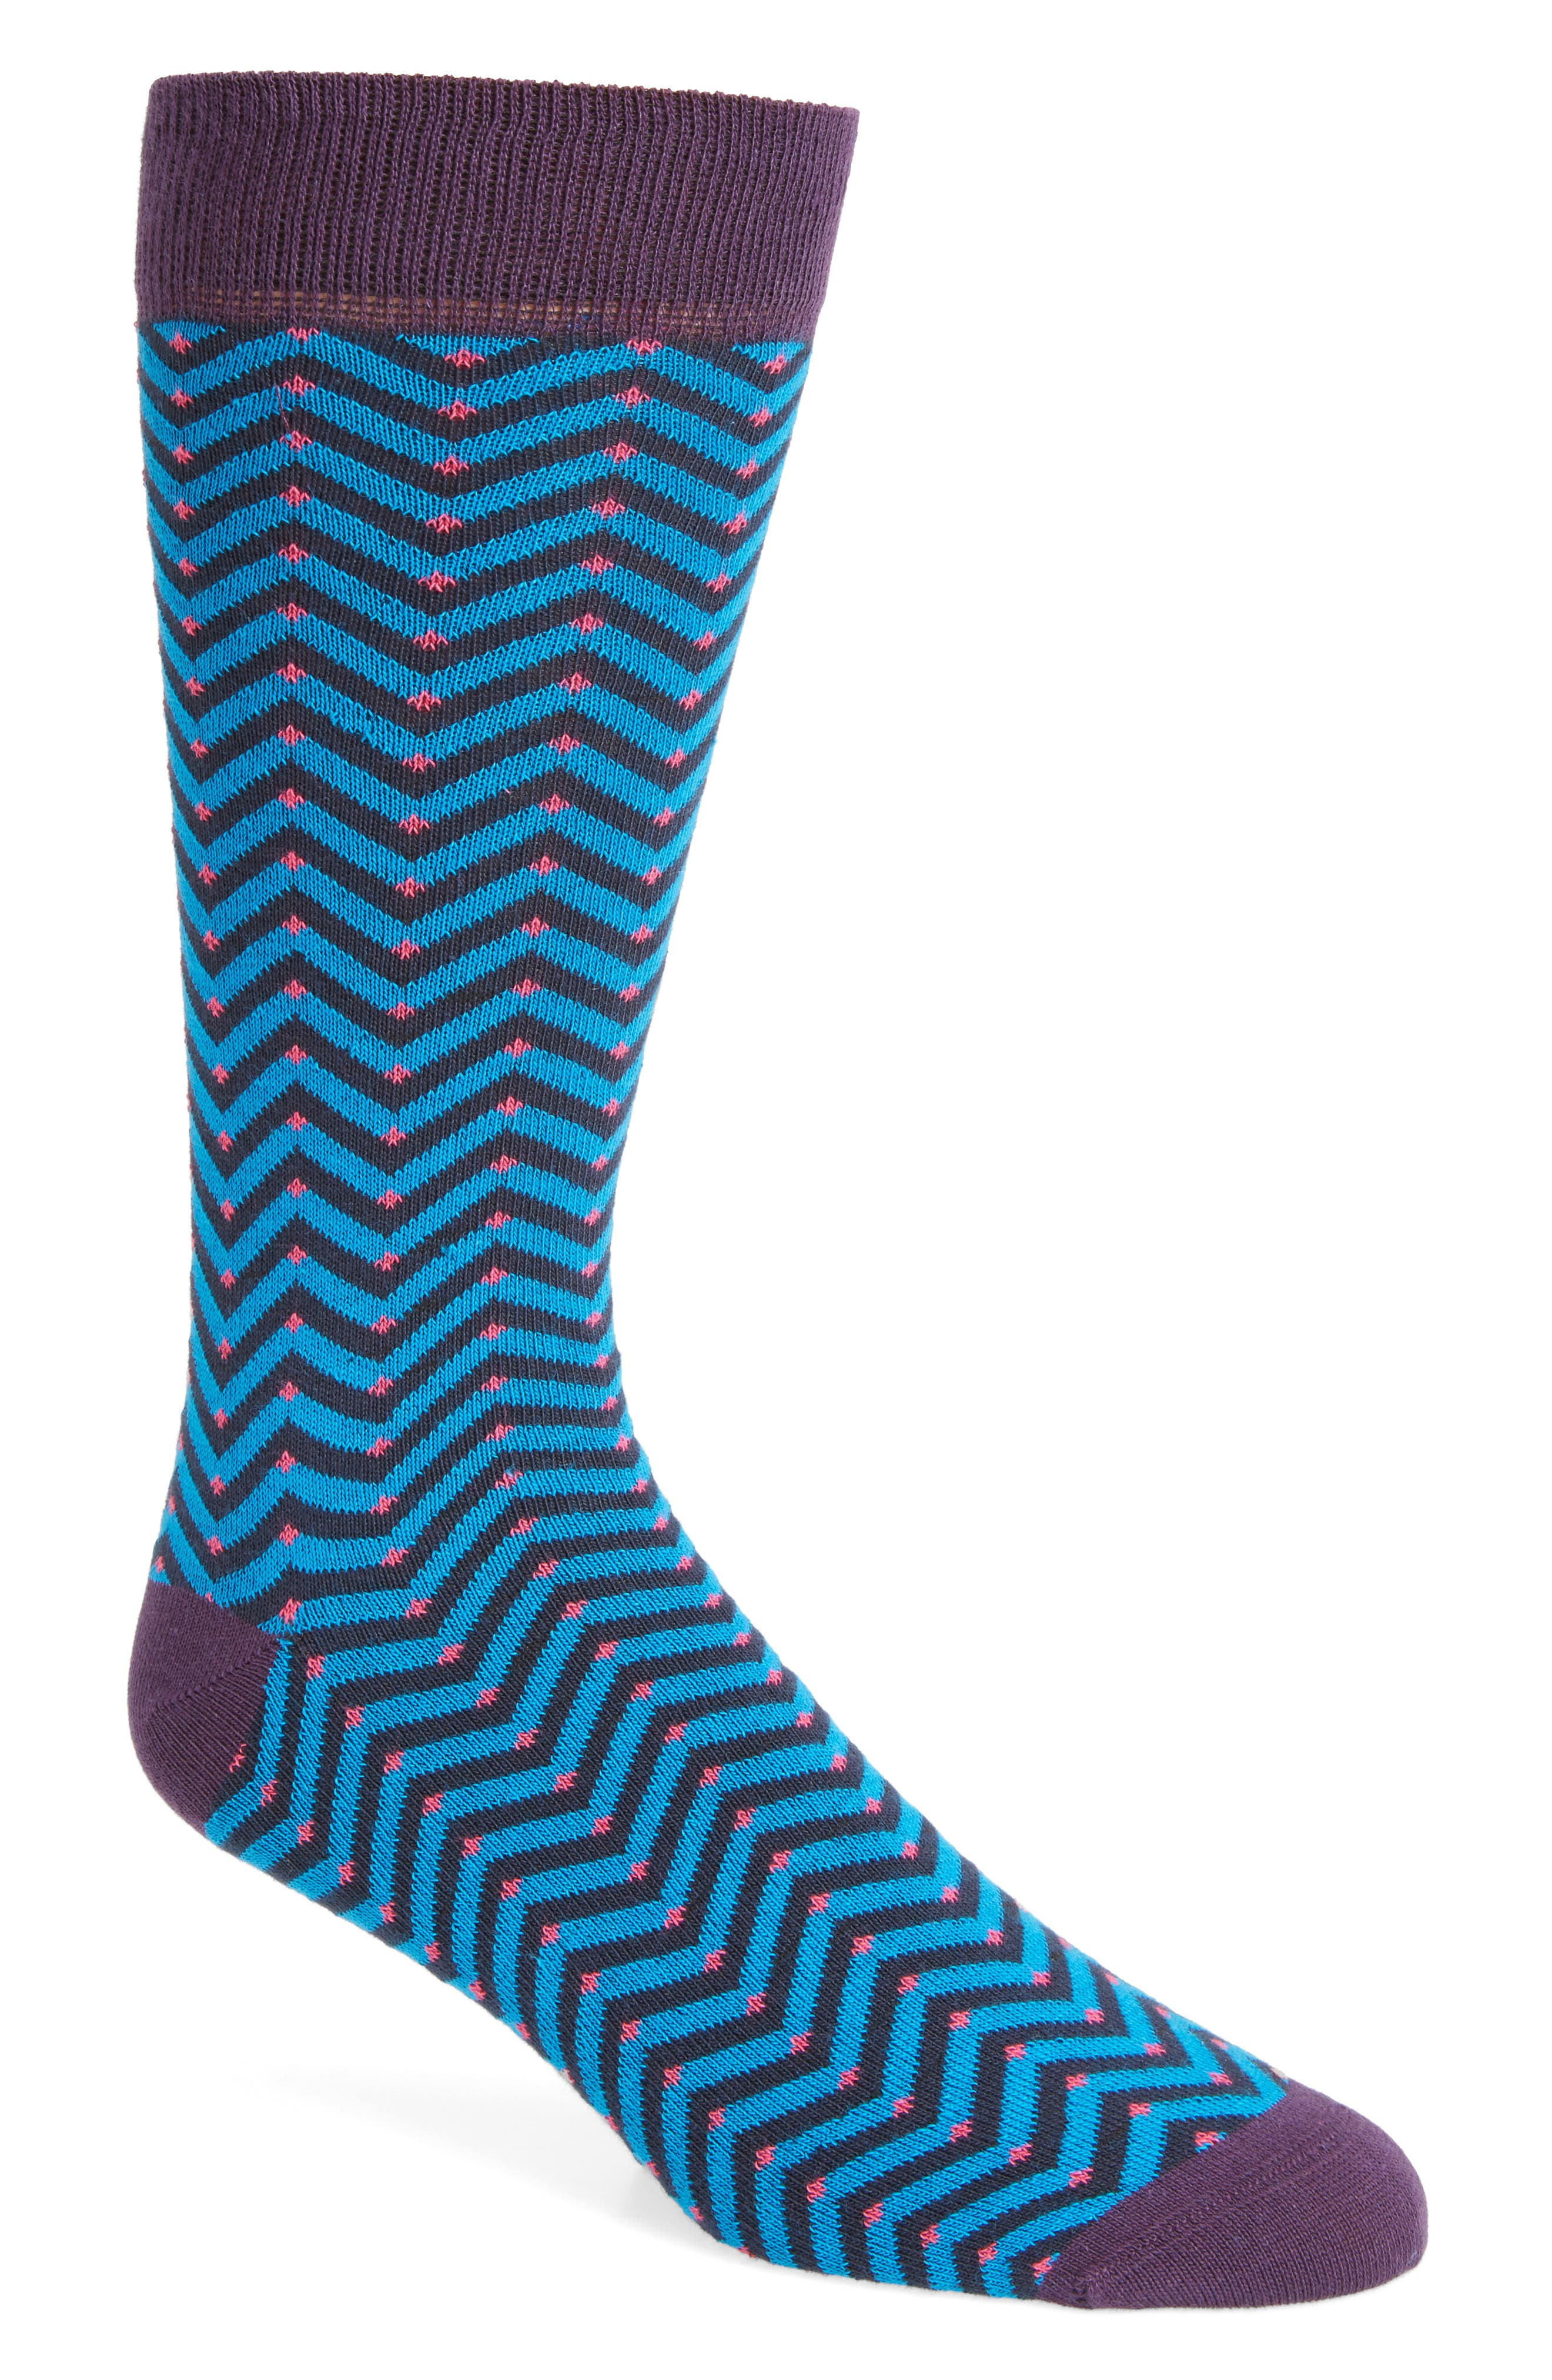 Chevron Stripe Socks,                             Main thumbnail 1, color,